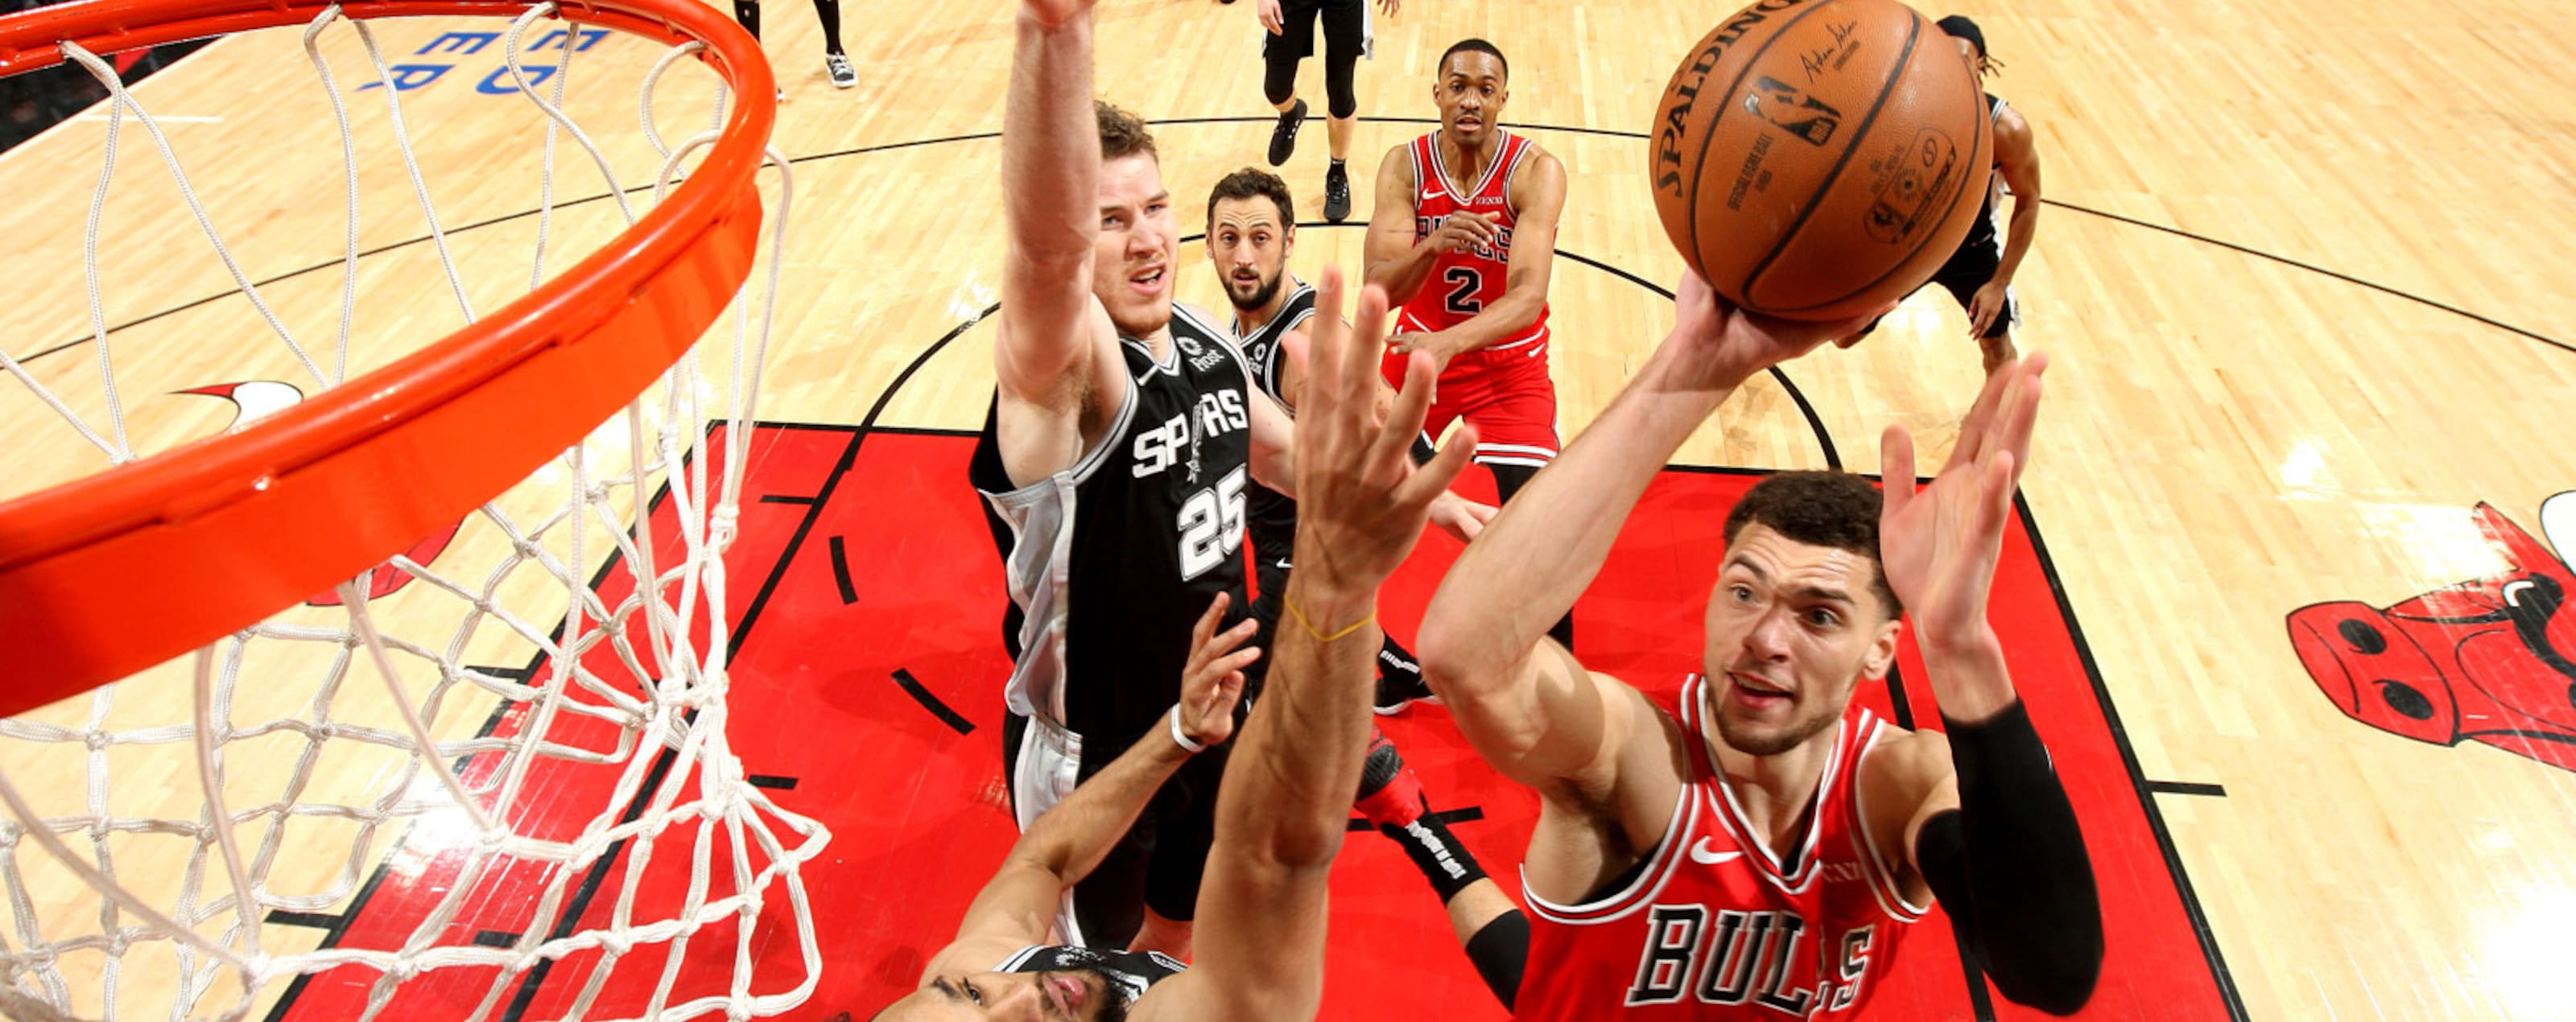 Zach LaVine #8 of the Chicago Bulls shoots the ball against the San Antonio Spurs on November 26, 2018 at the United Center in Chicago, Illinois.